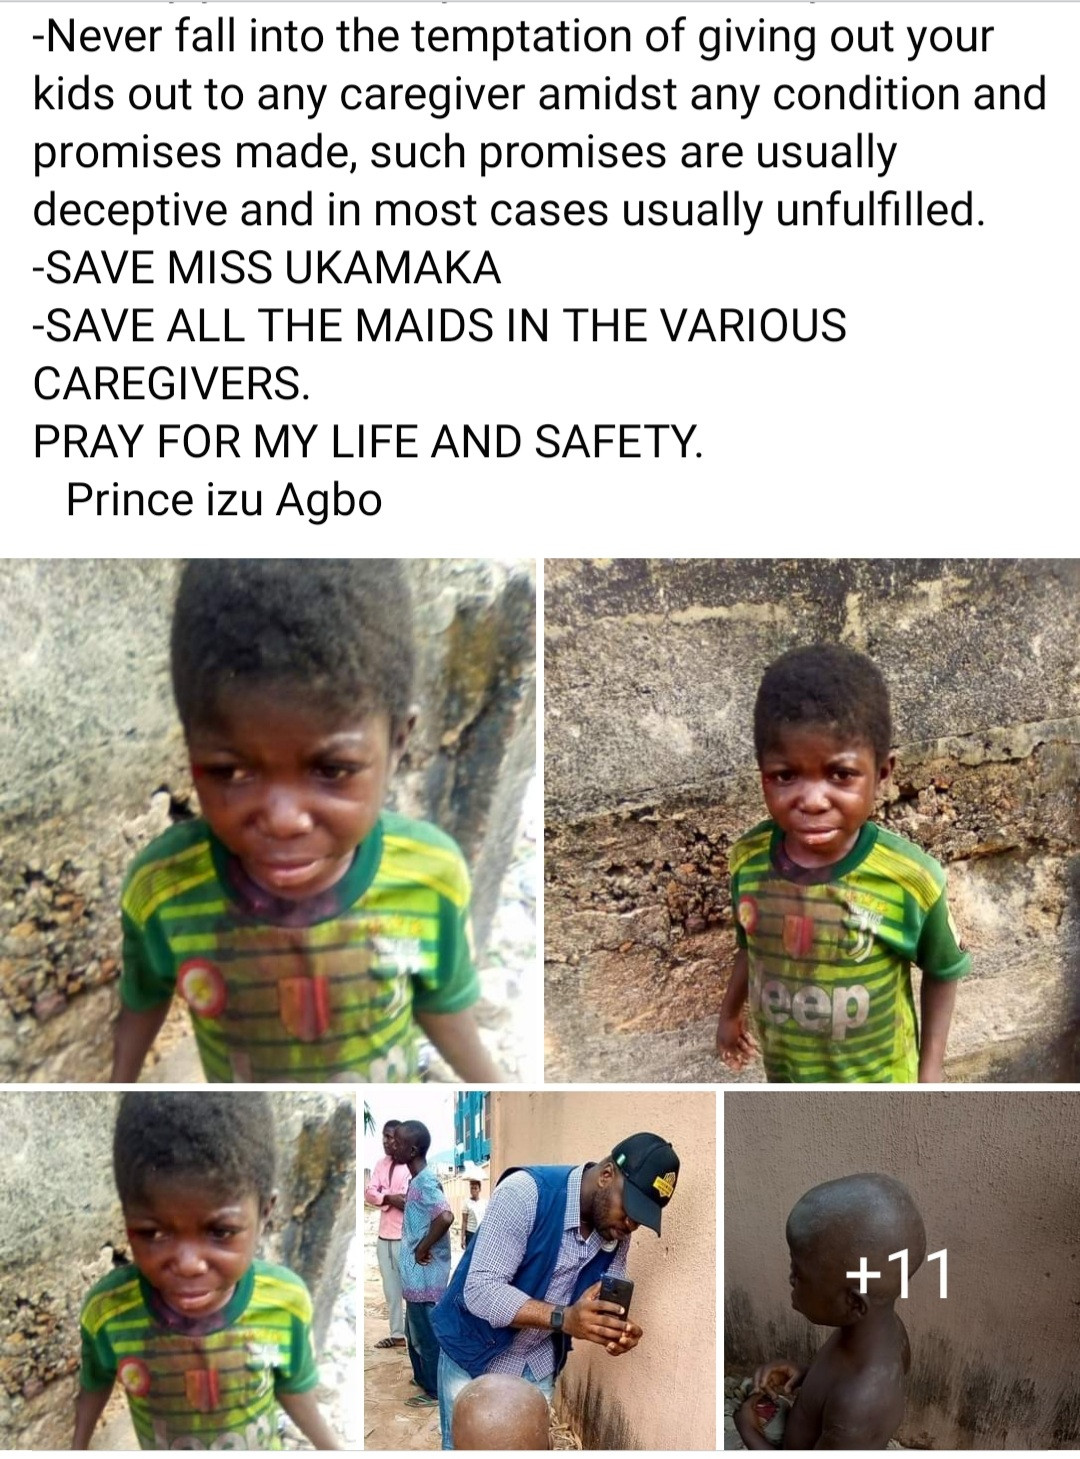 Ochachonews: Young Maid Brutalised After Being Accused Of Witchcraft In Anambra